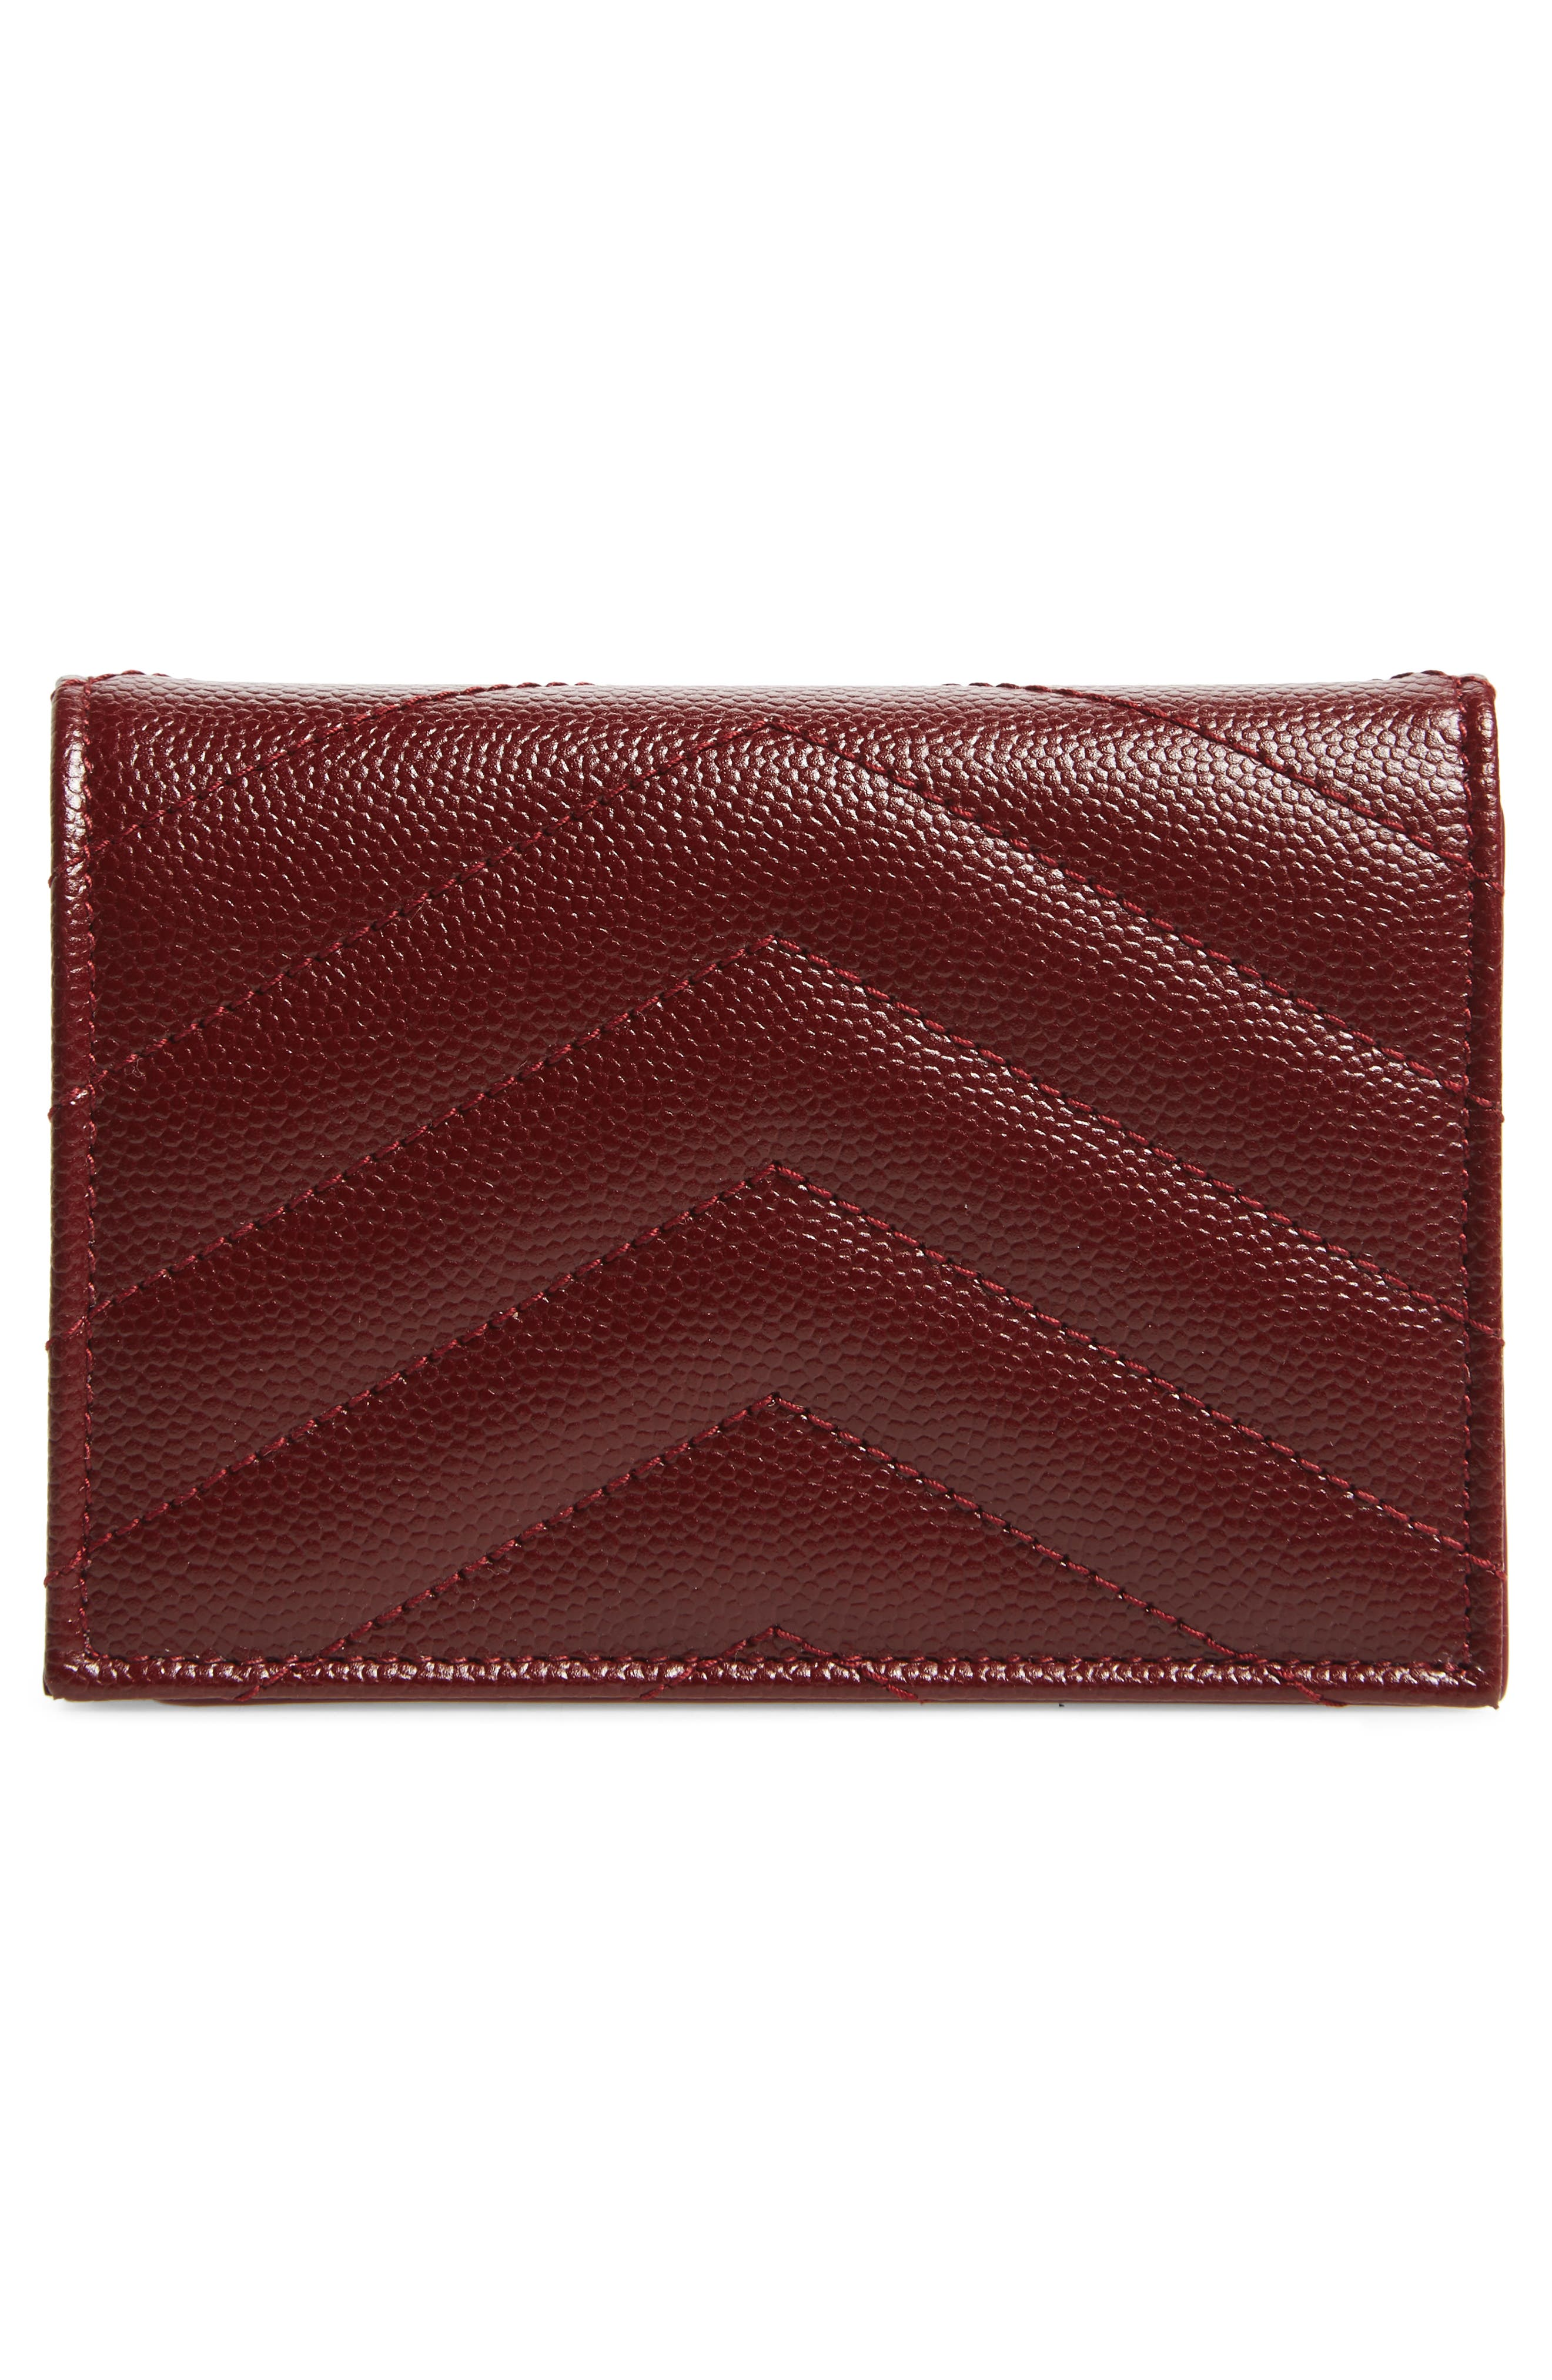 Textured Leather Card Case,                             Alternate thumbnail 11, color,